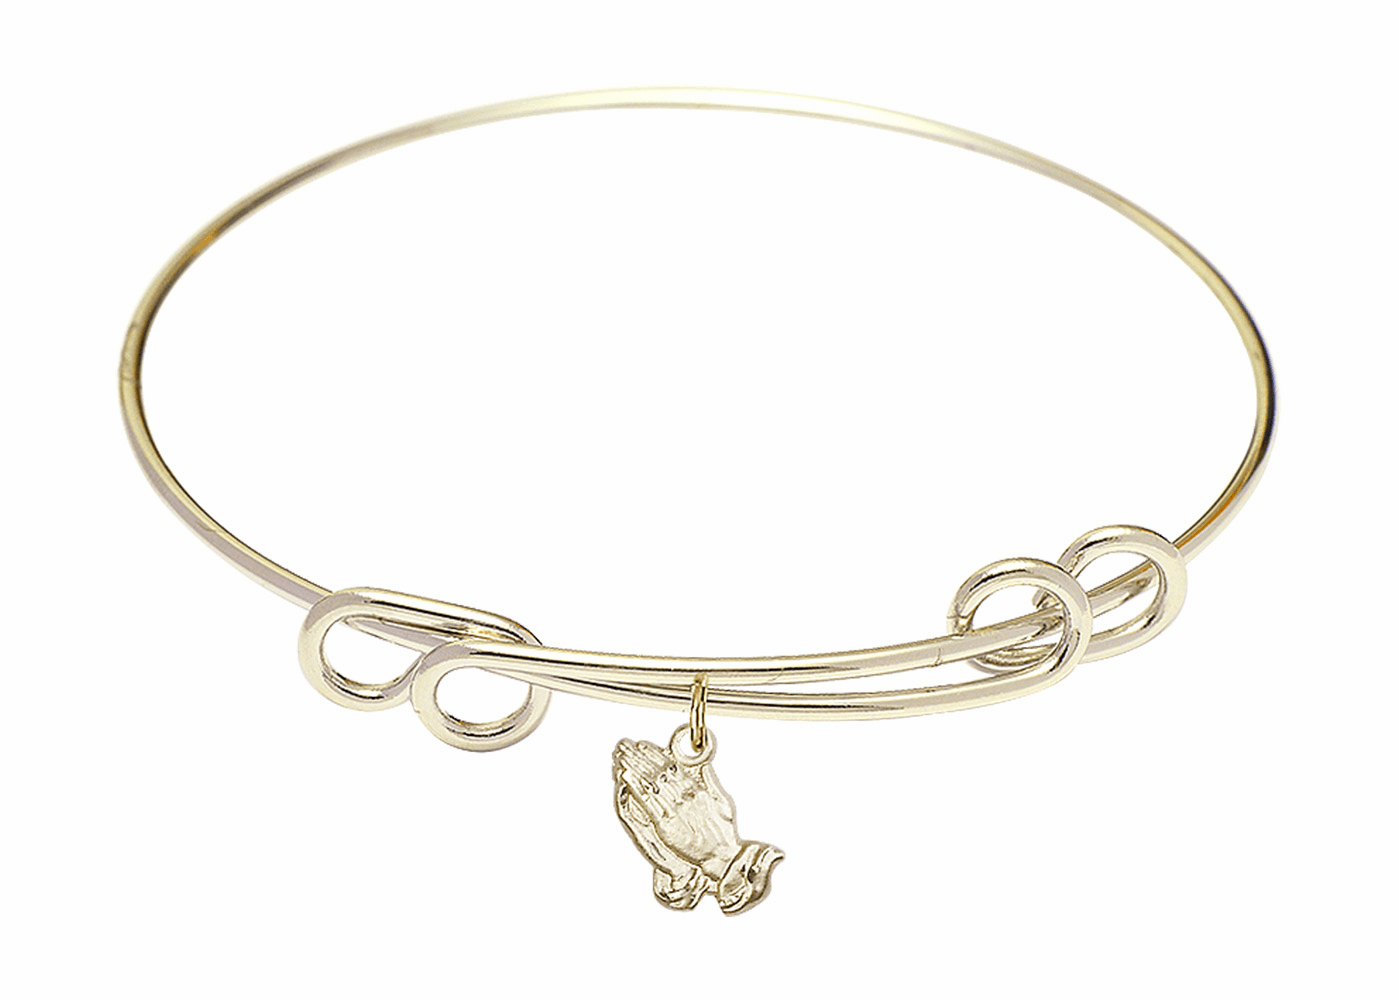 Round Double Loop Bangle Bracelet w/Praying Hands Charm by Bliss Mfg